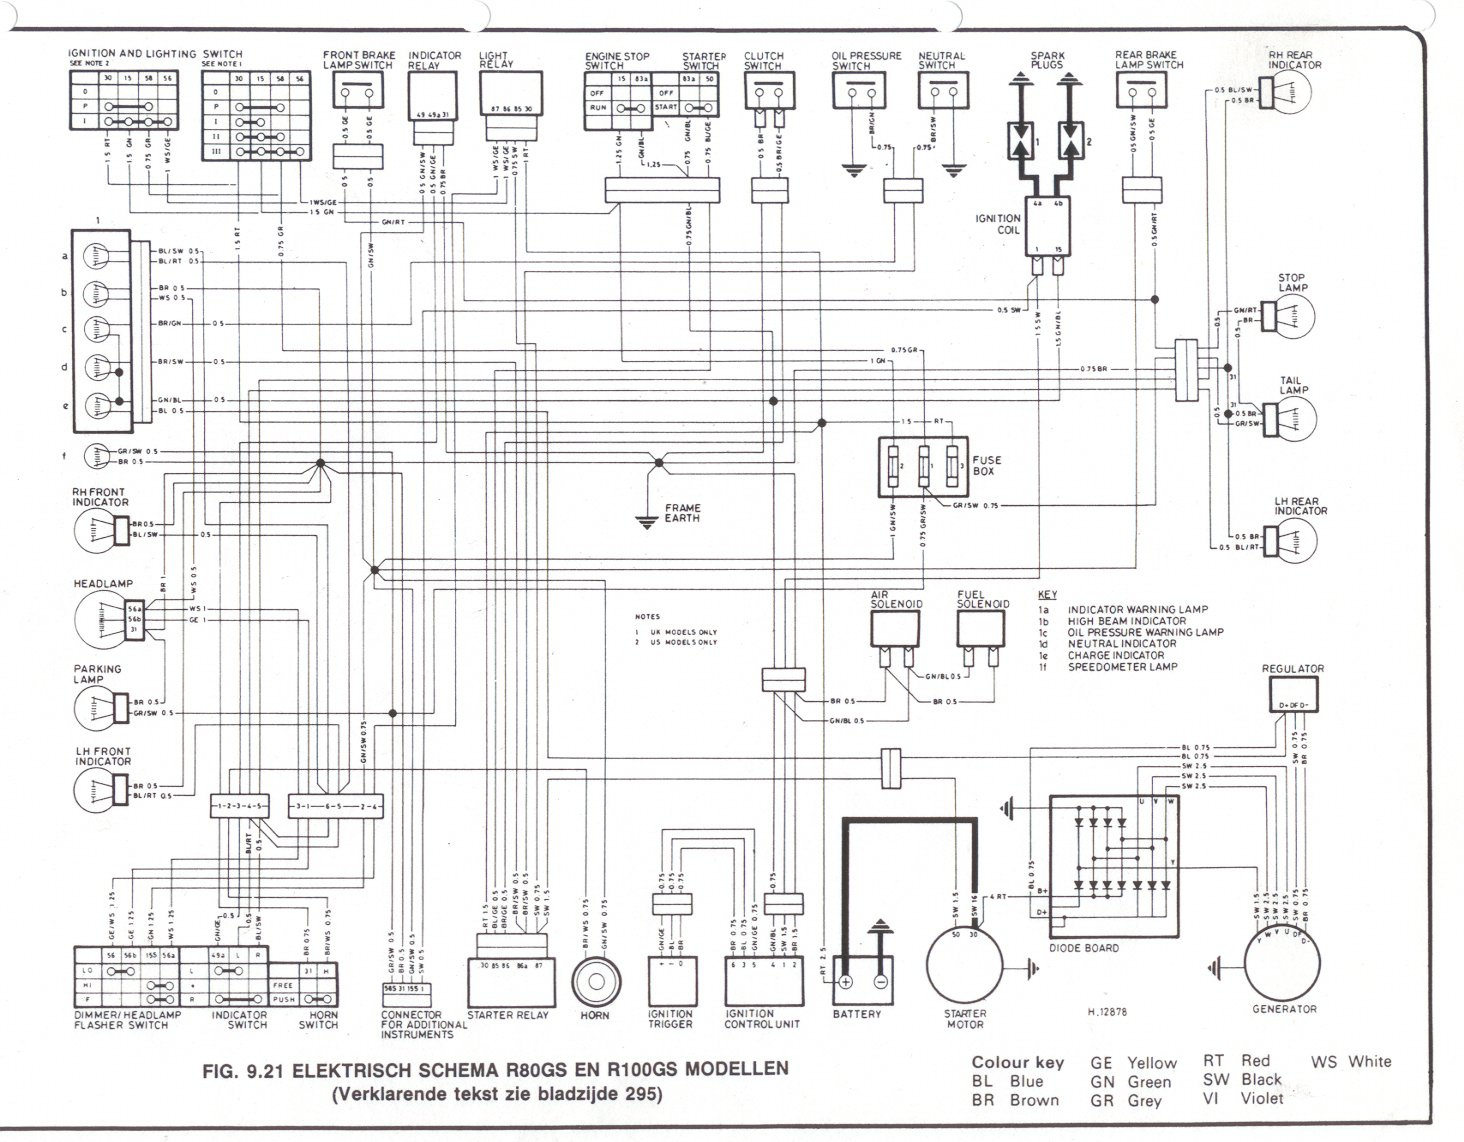 R80 100GS Schematic bmw r100 info thiel org za bmw r100rs gauge wiring diagram at nearapp.co